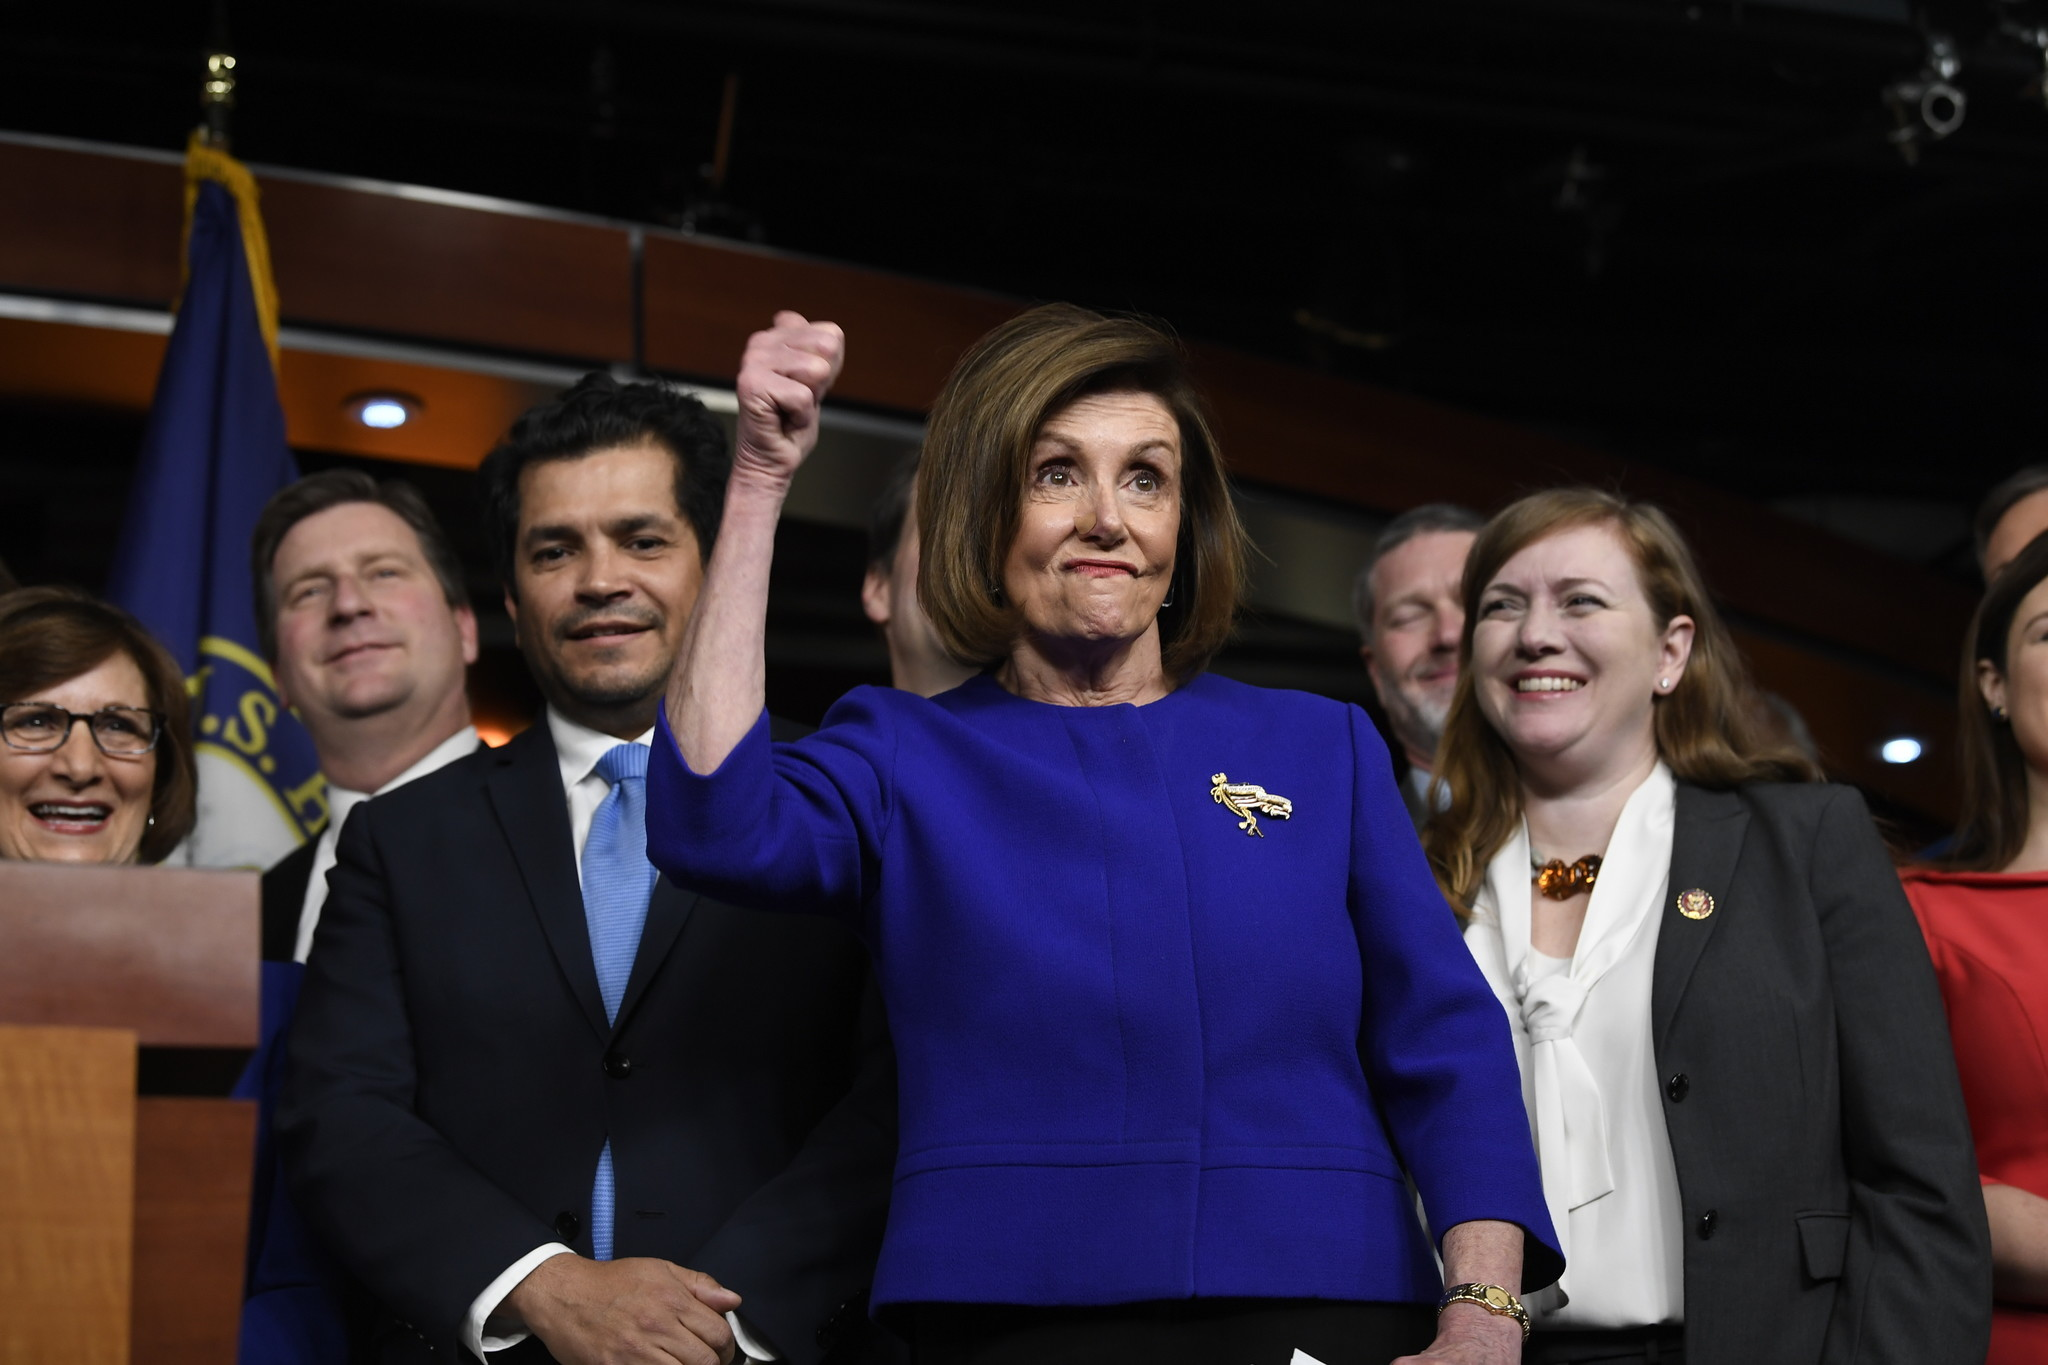 Trump and Democrats jockey for credit over 'new NAFTA' trade deal as impeachment drama rages